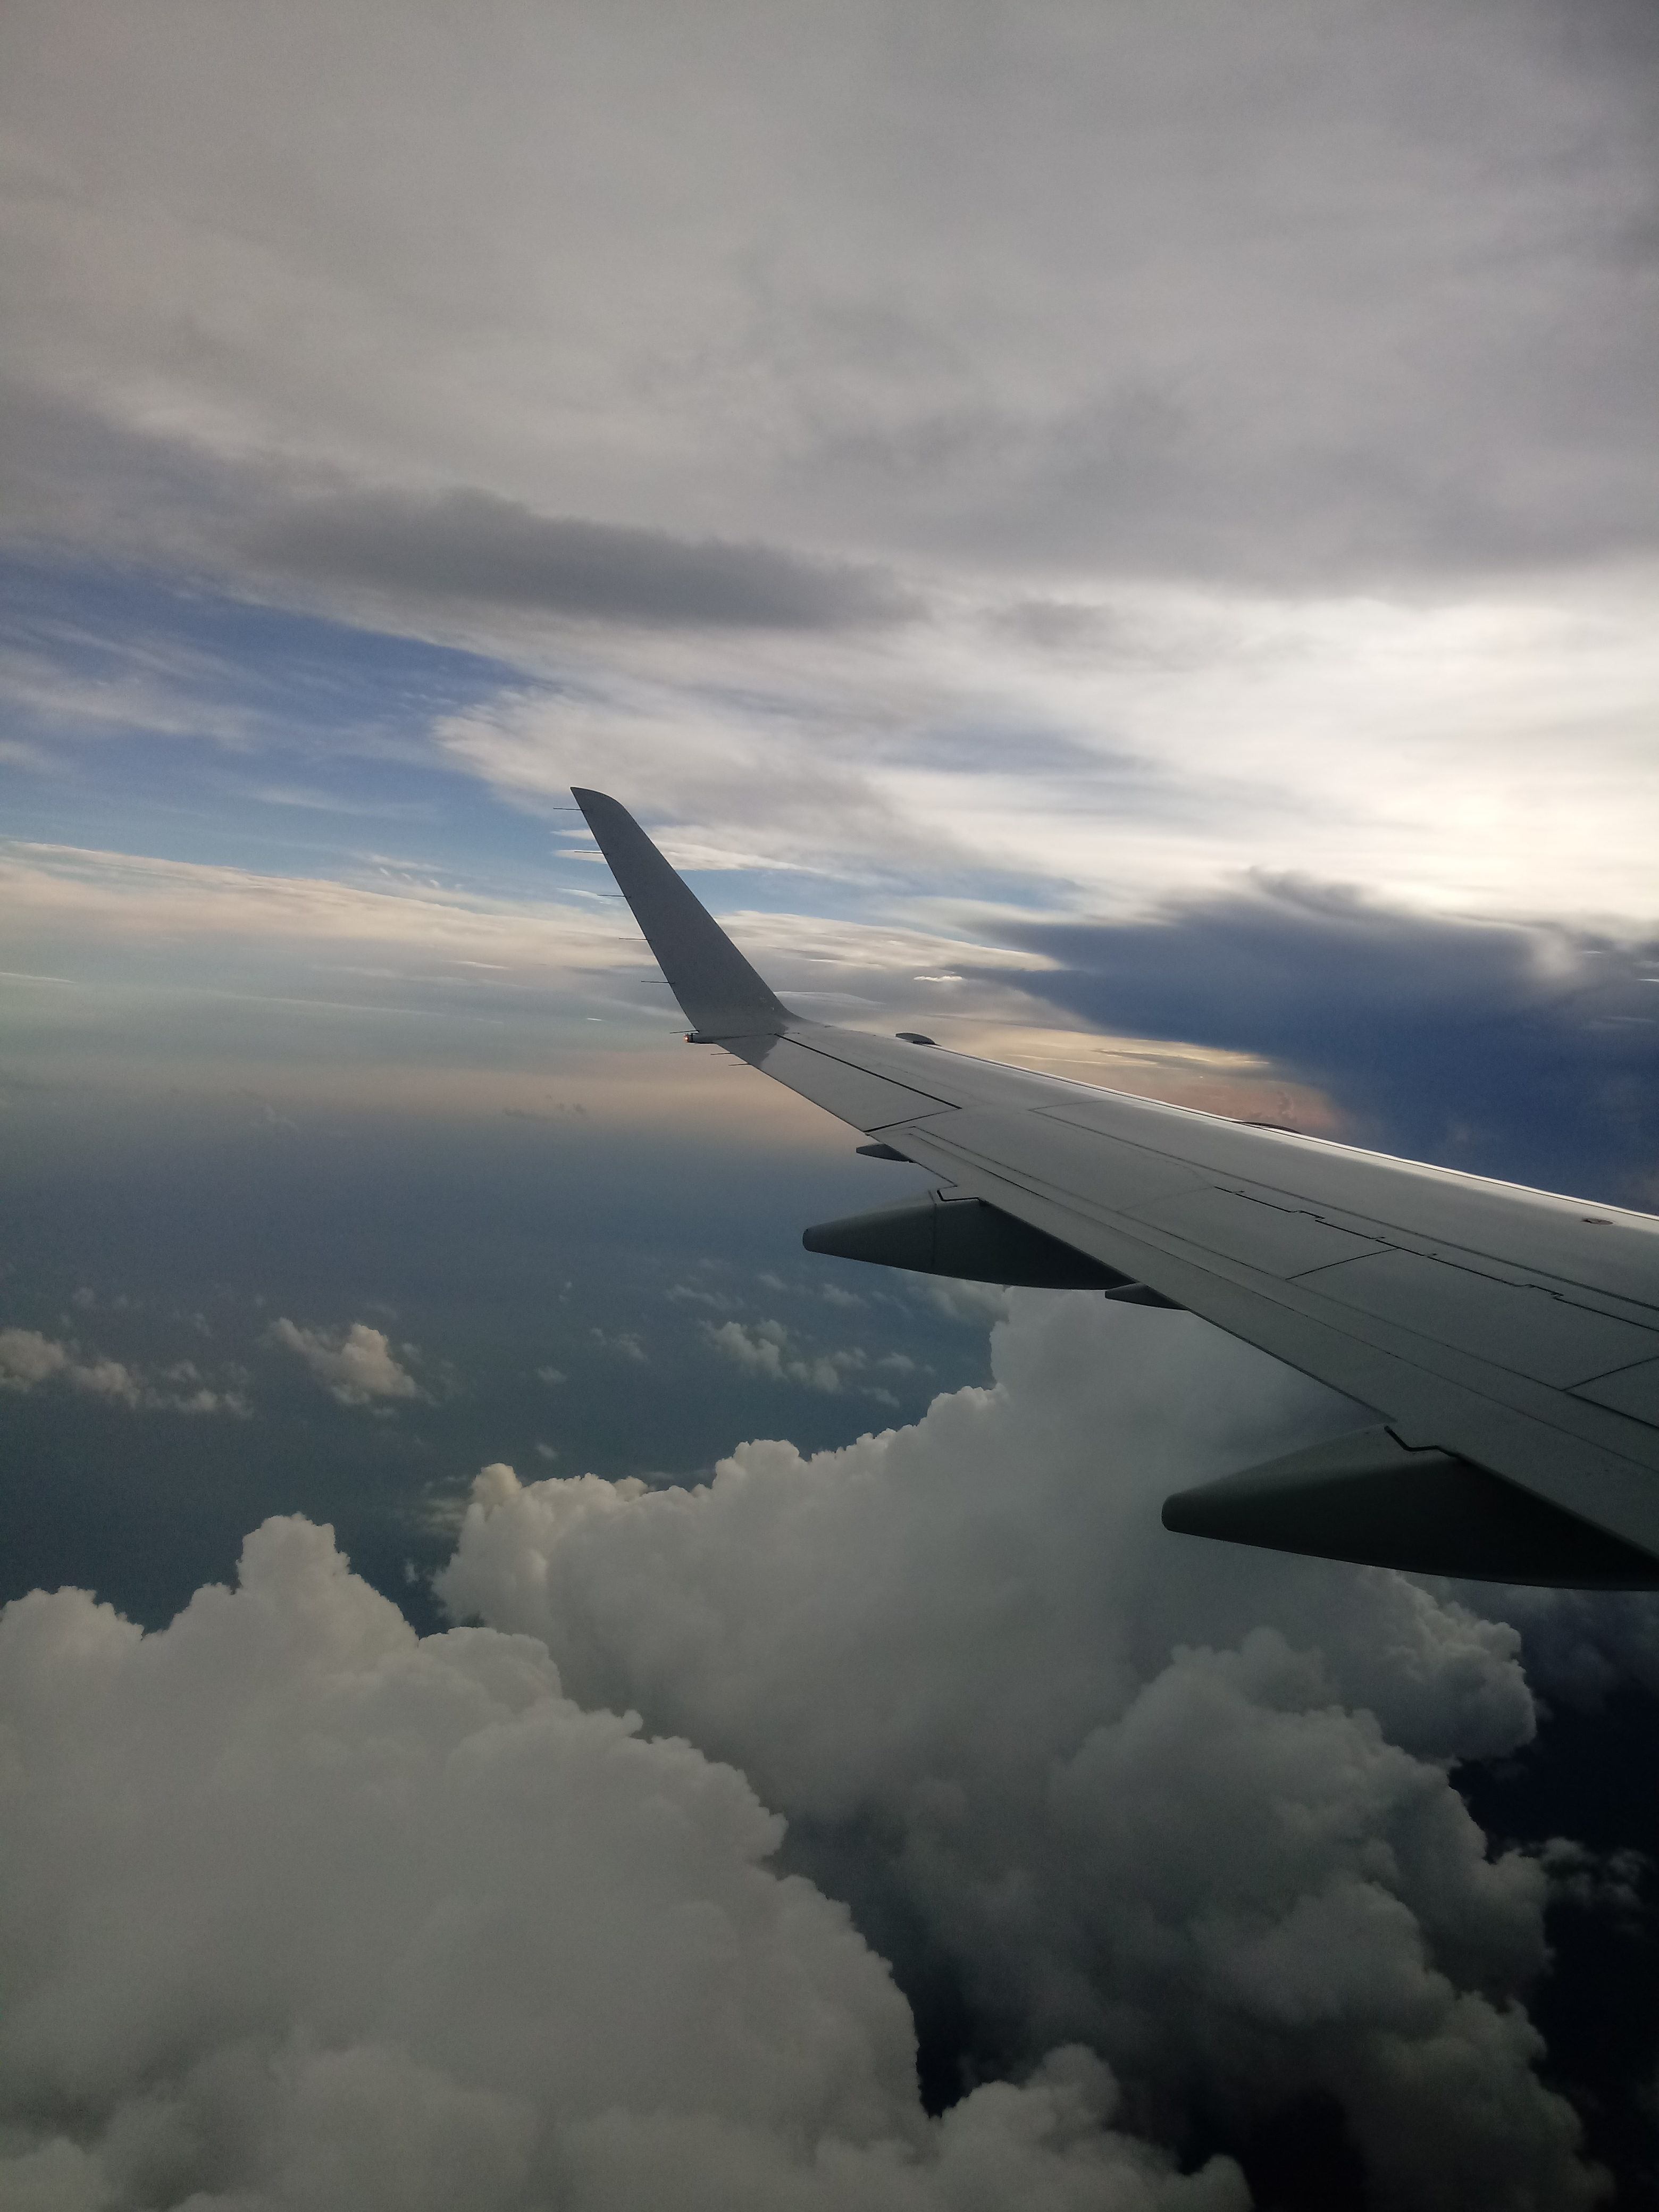 The view out of the airplane window